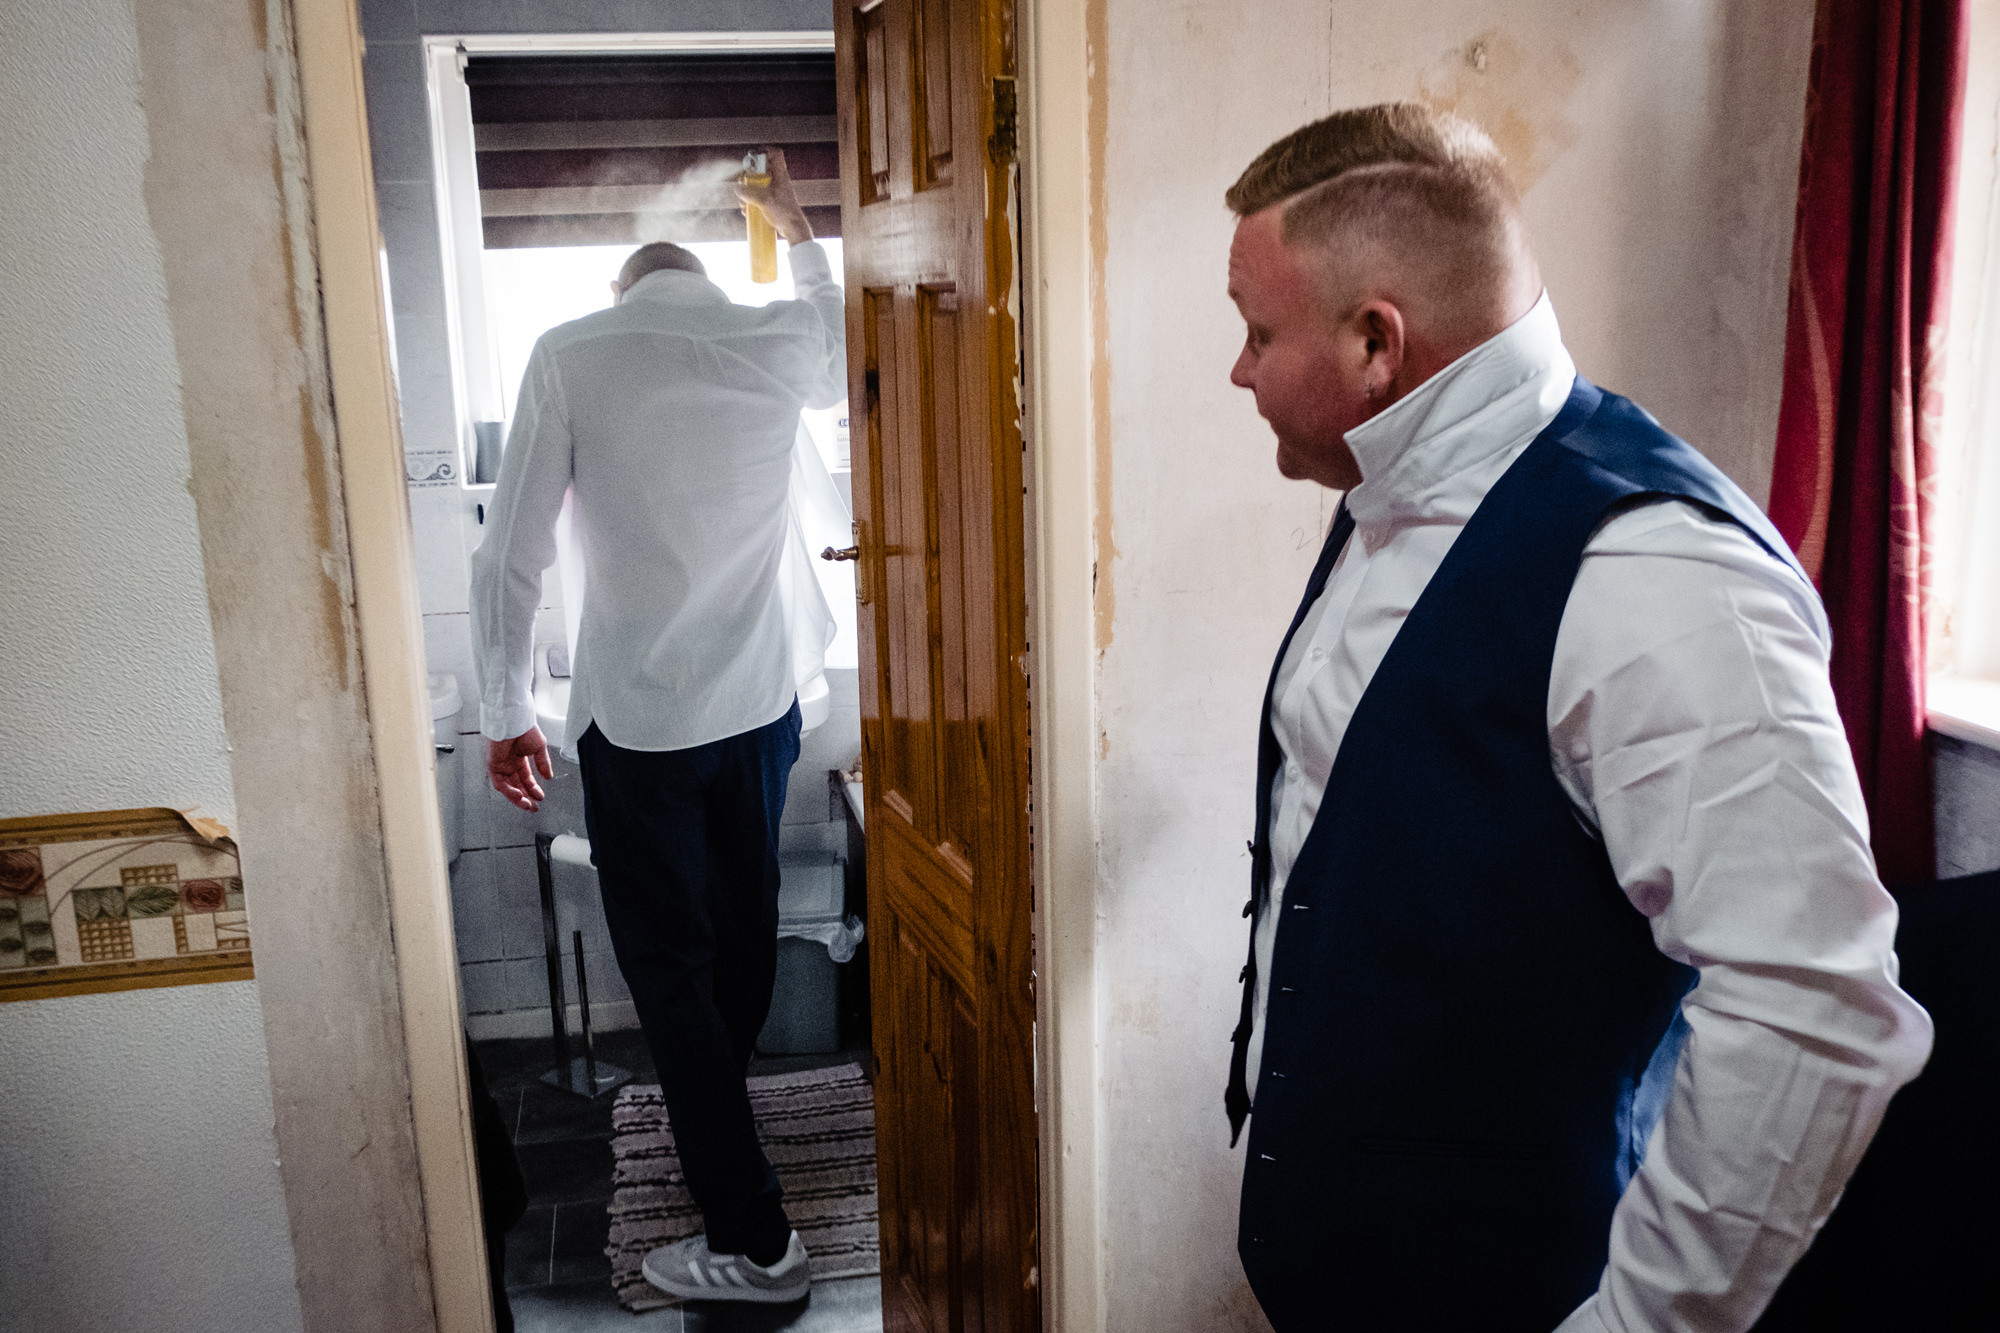 groom using hairspray in the bathroom as an usher looks on.